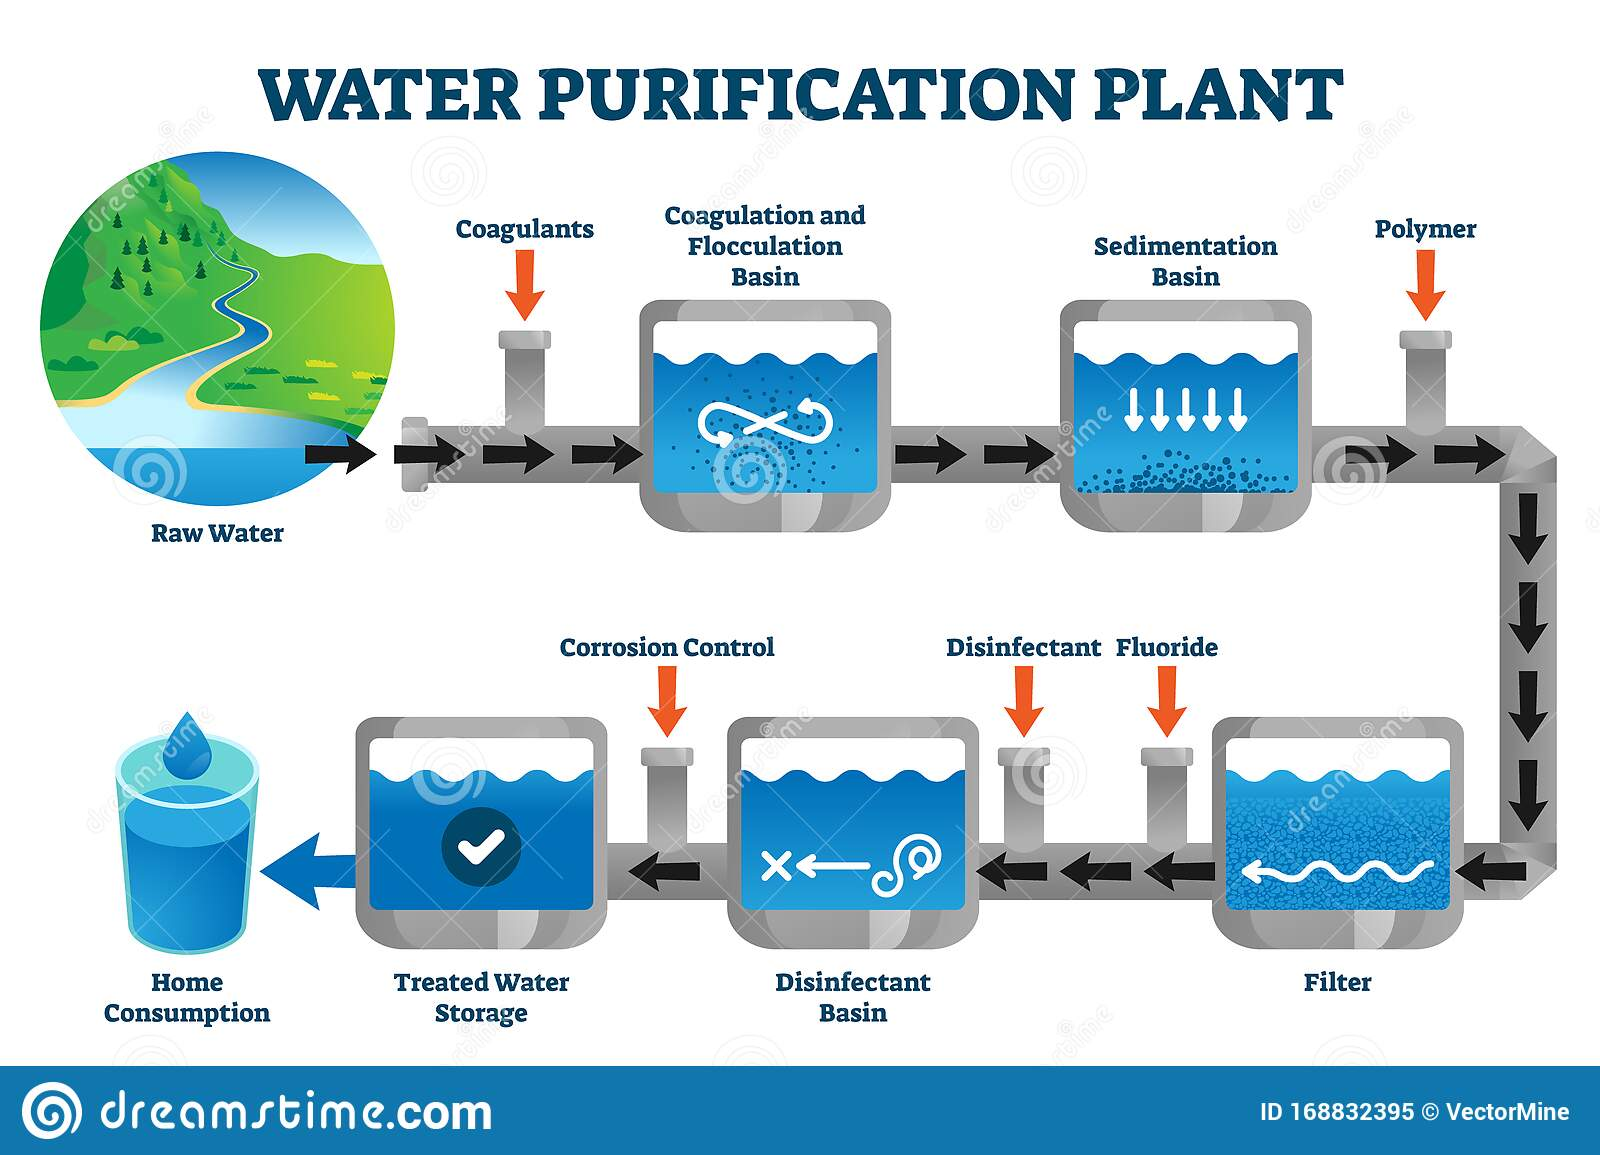 Water Purification Plant Filtration Process Explanation Vector Illustration  Stock Vector - Illustration of concept, consumption: 168832395